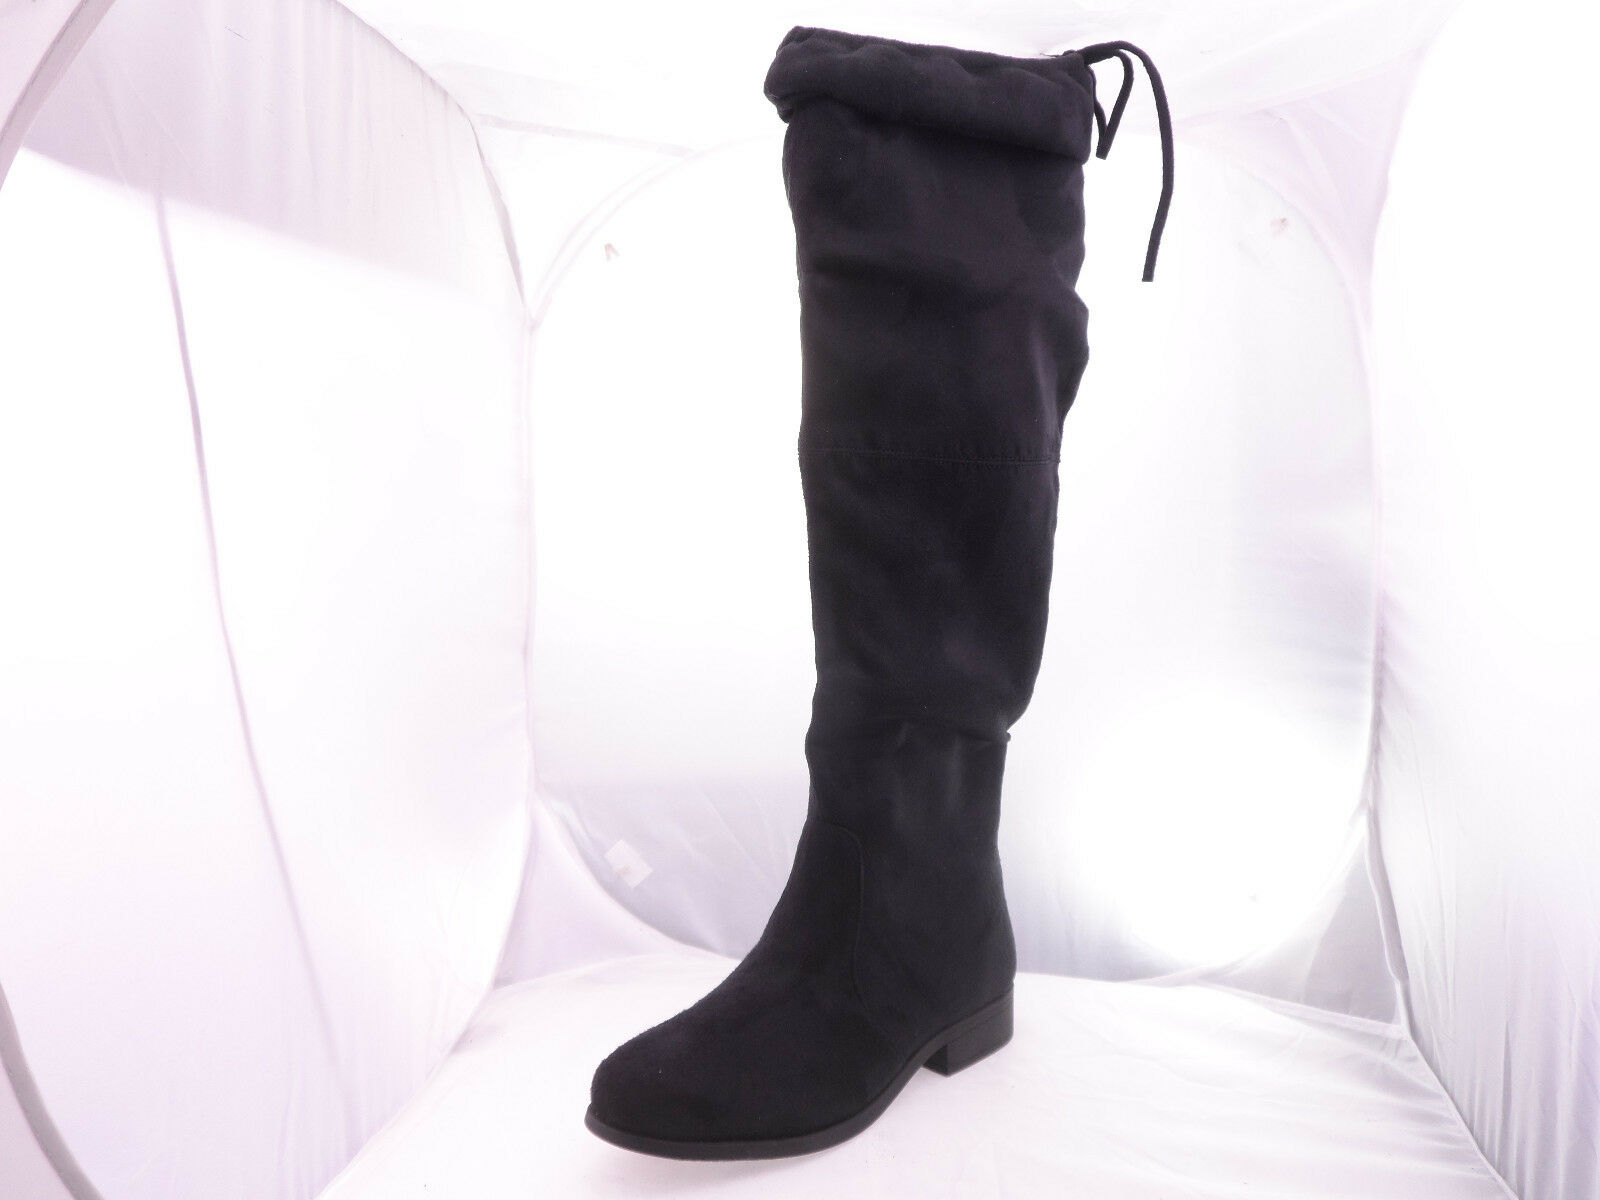 Brinley Co. Womens Black Faux Suede Over-the-knee Boots Black Womens 9 M 7132ba